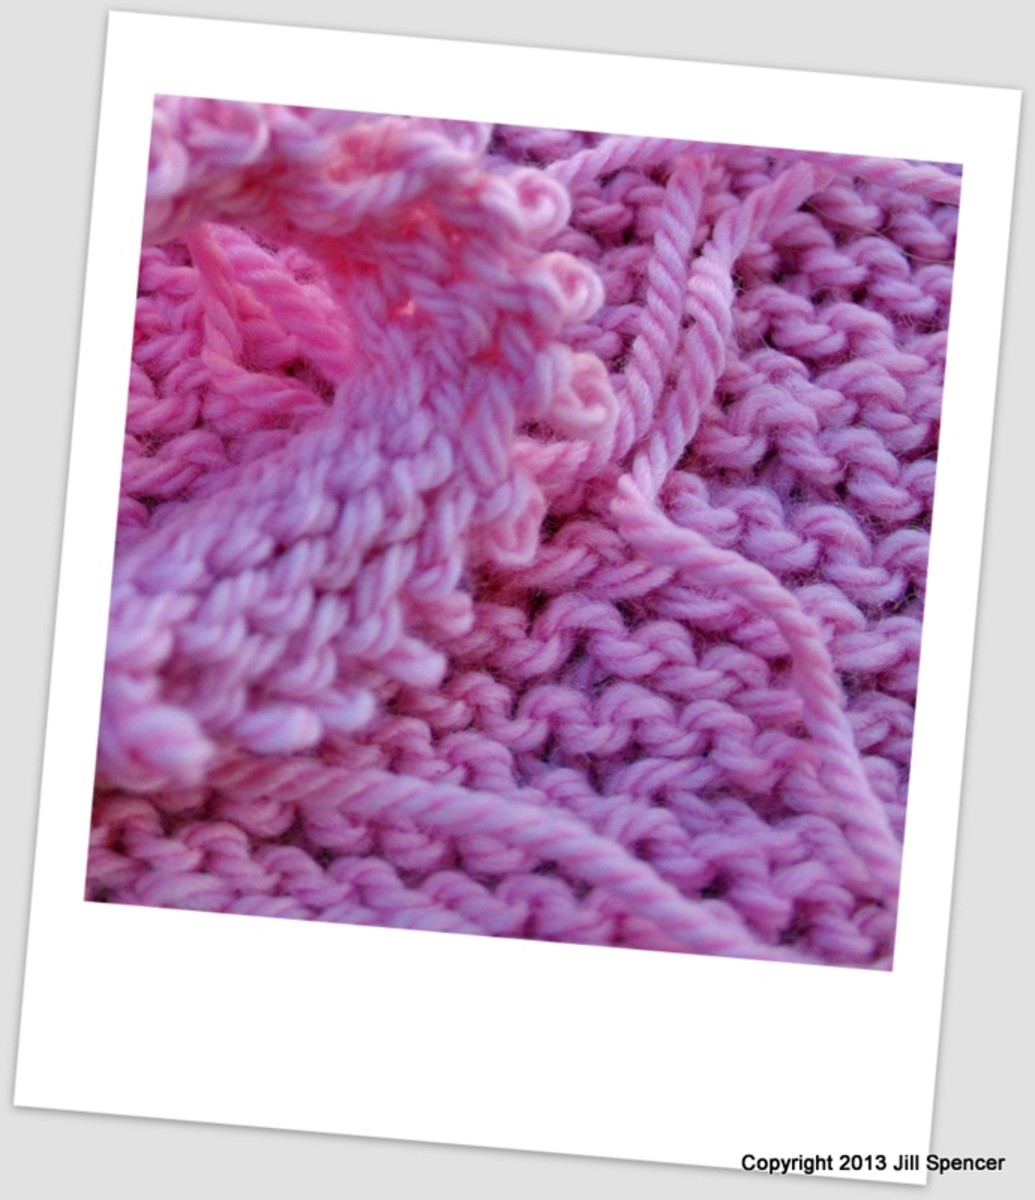 There, huddled on the dirty floormat, was my knitting. A limp, fuzzy mess of purple-pink wool.